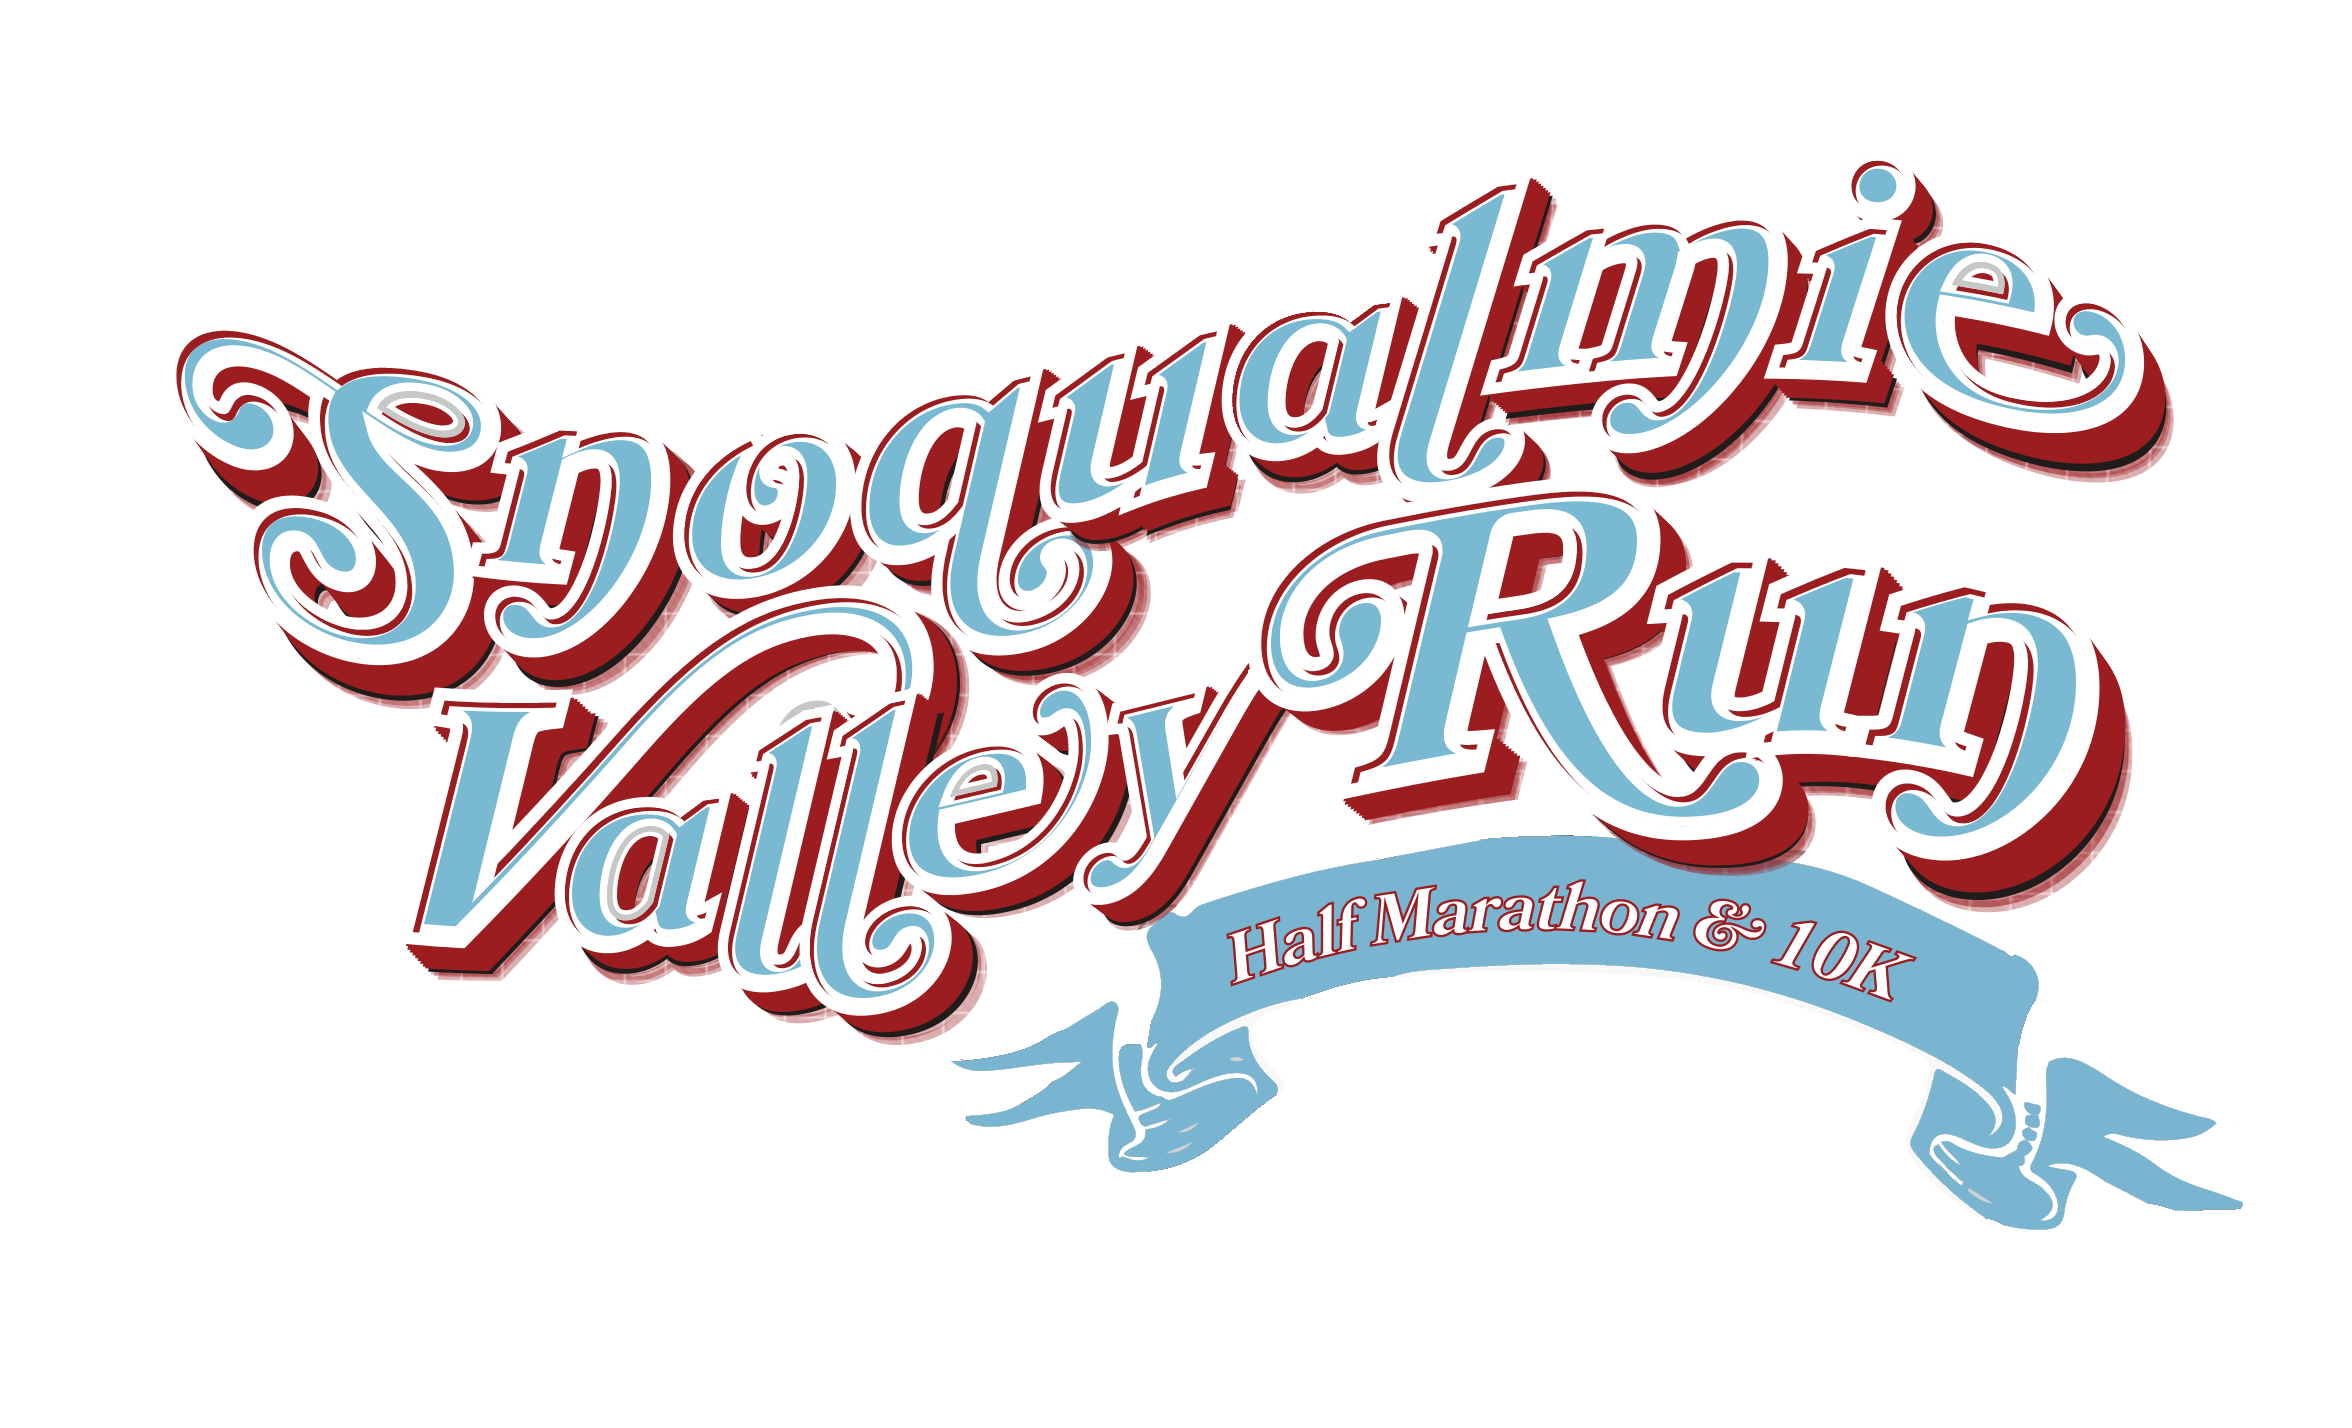 Snoqualmie Valley Run